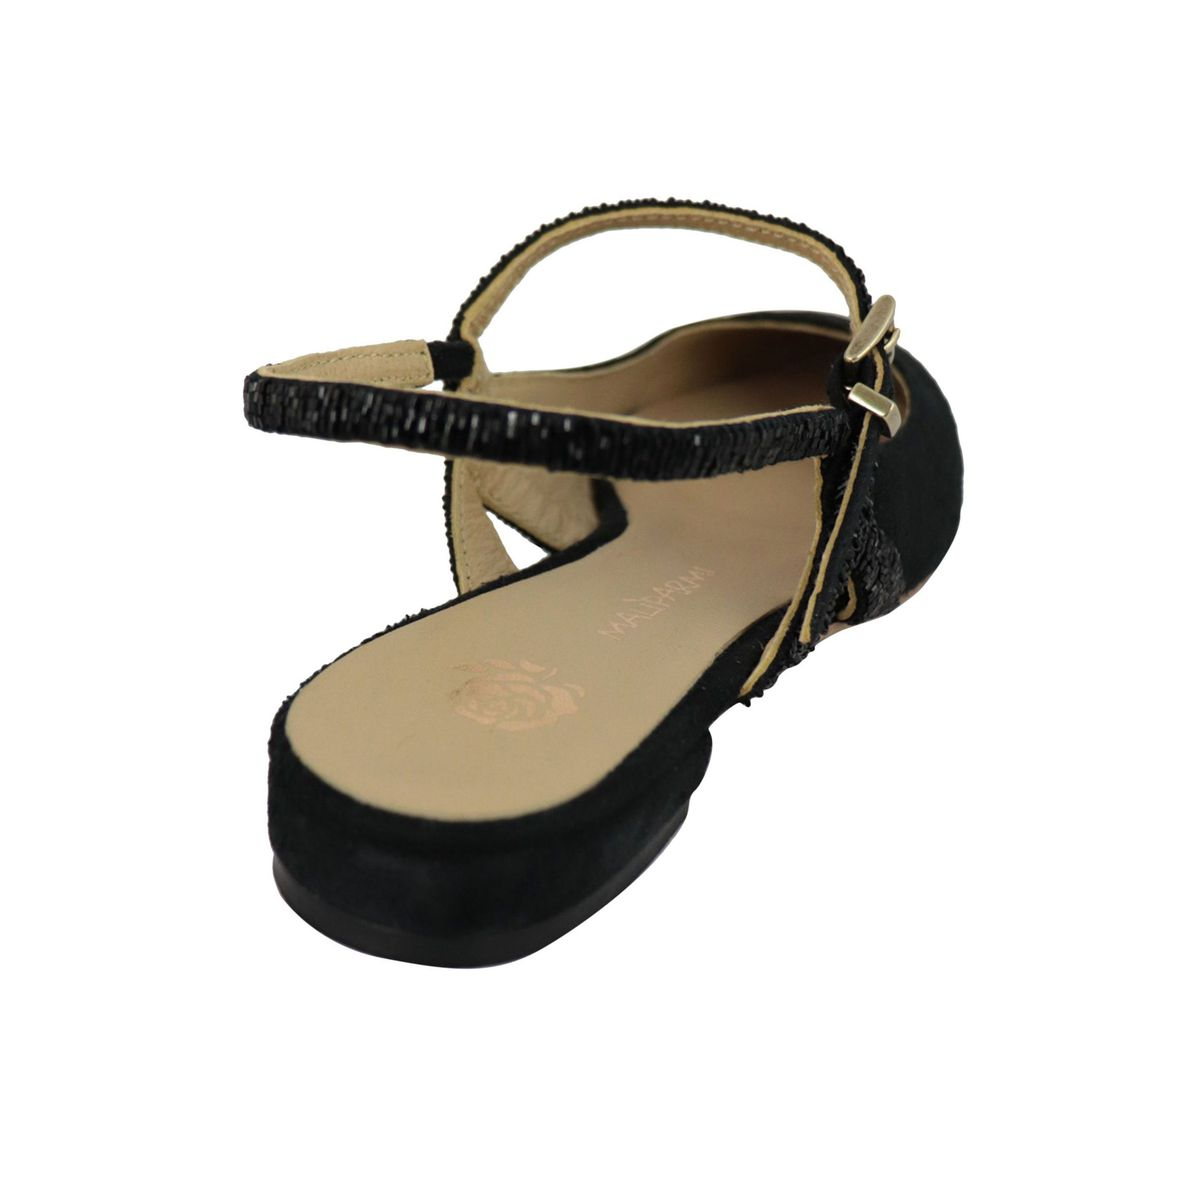 Suede slingback shoe with bead details Black Maliparmi